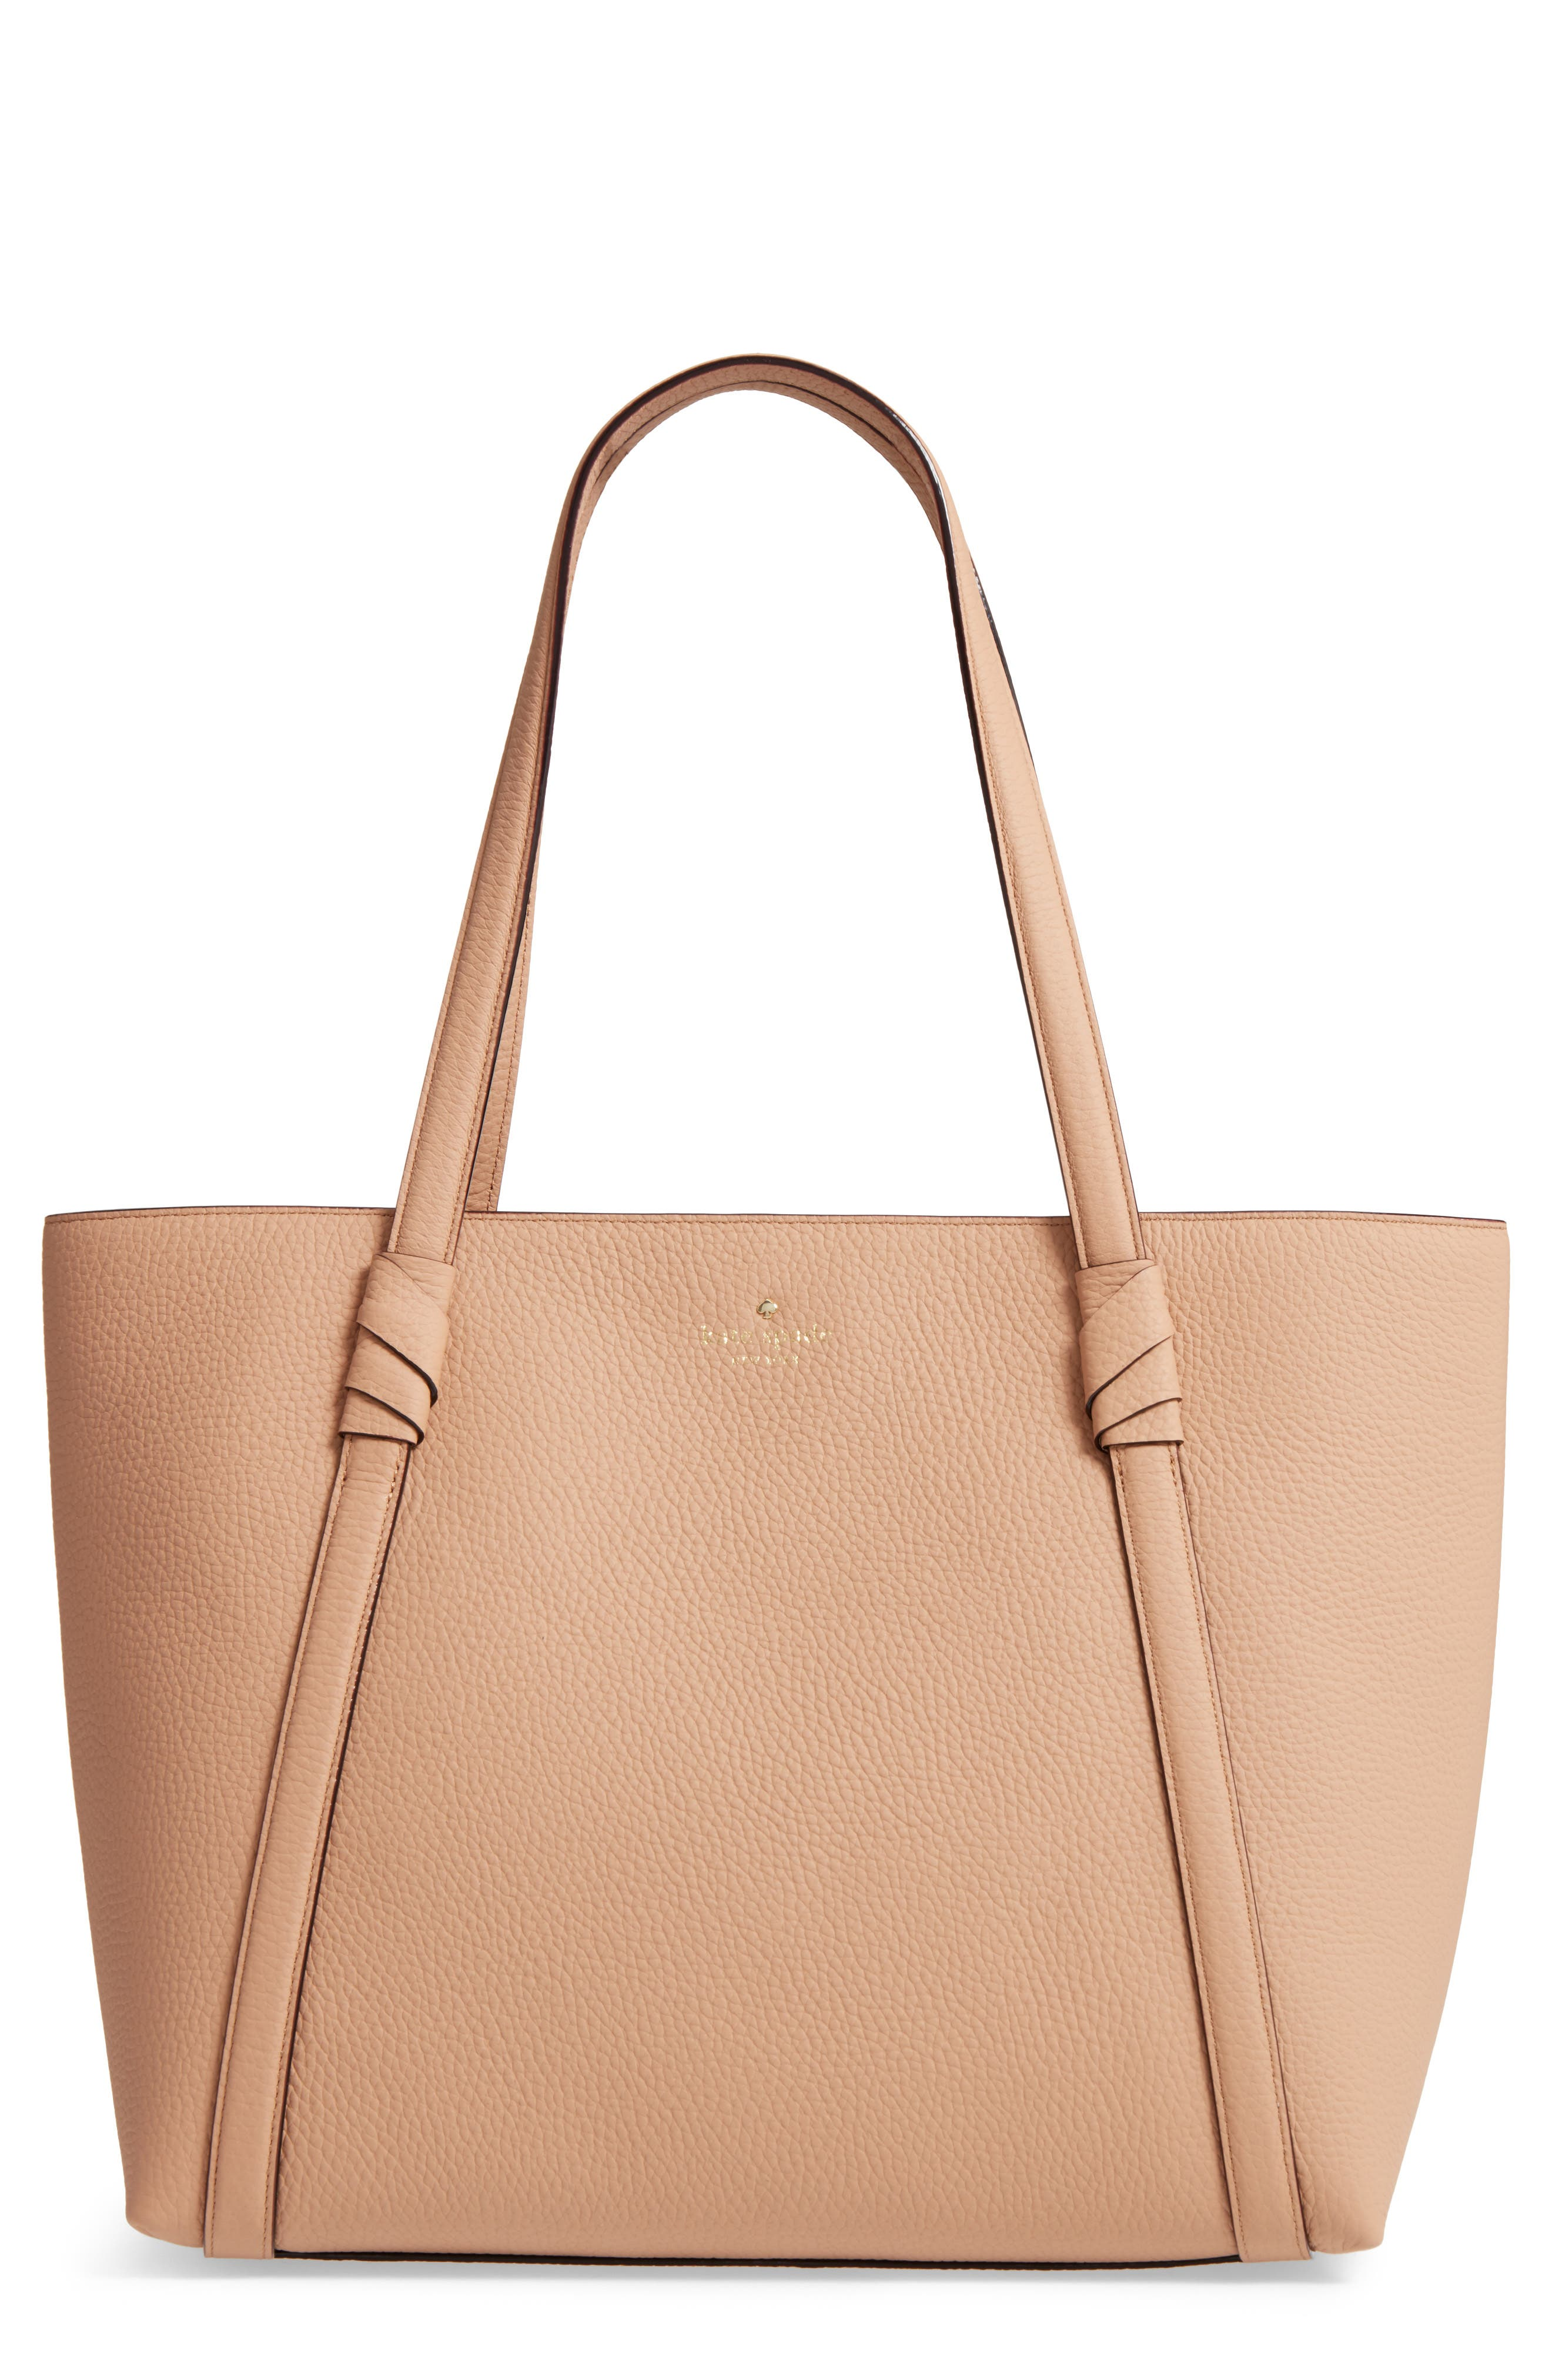 Main Image - kate spade new york daniels drive - cherie leather tote (Nordstrom Exclusive)